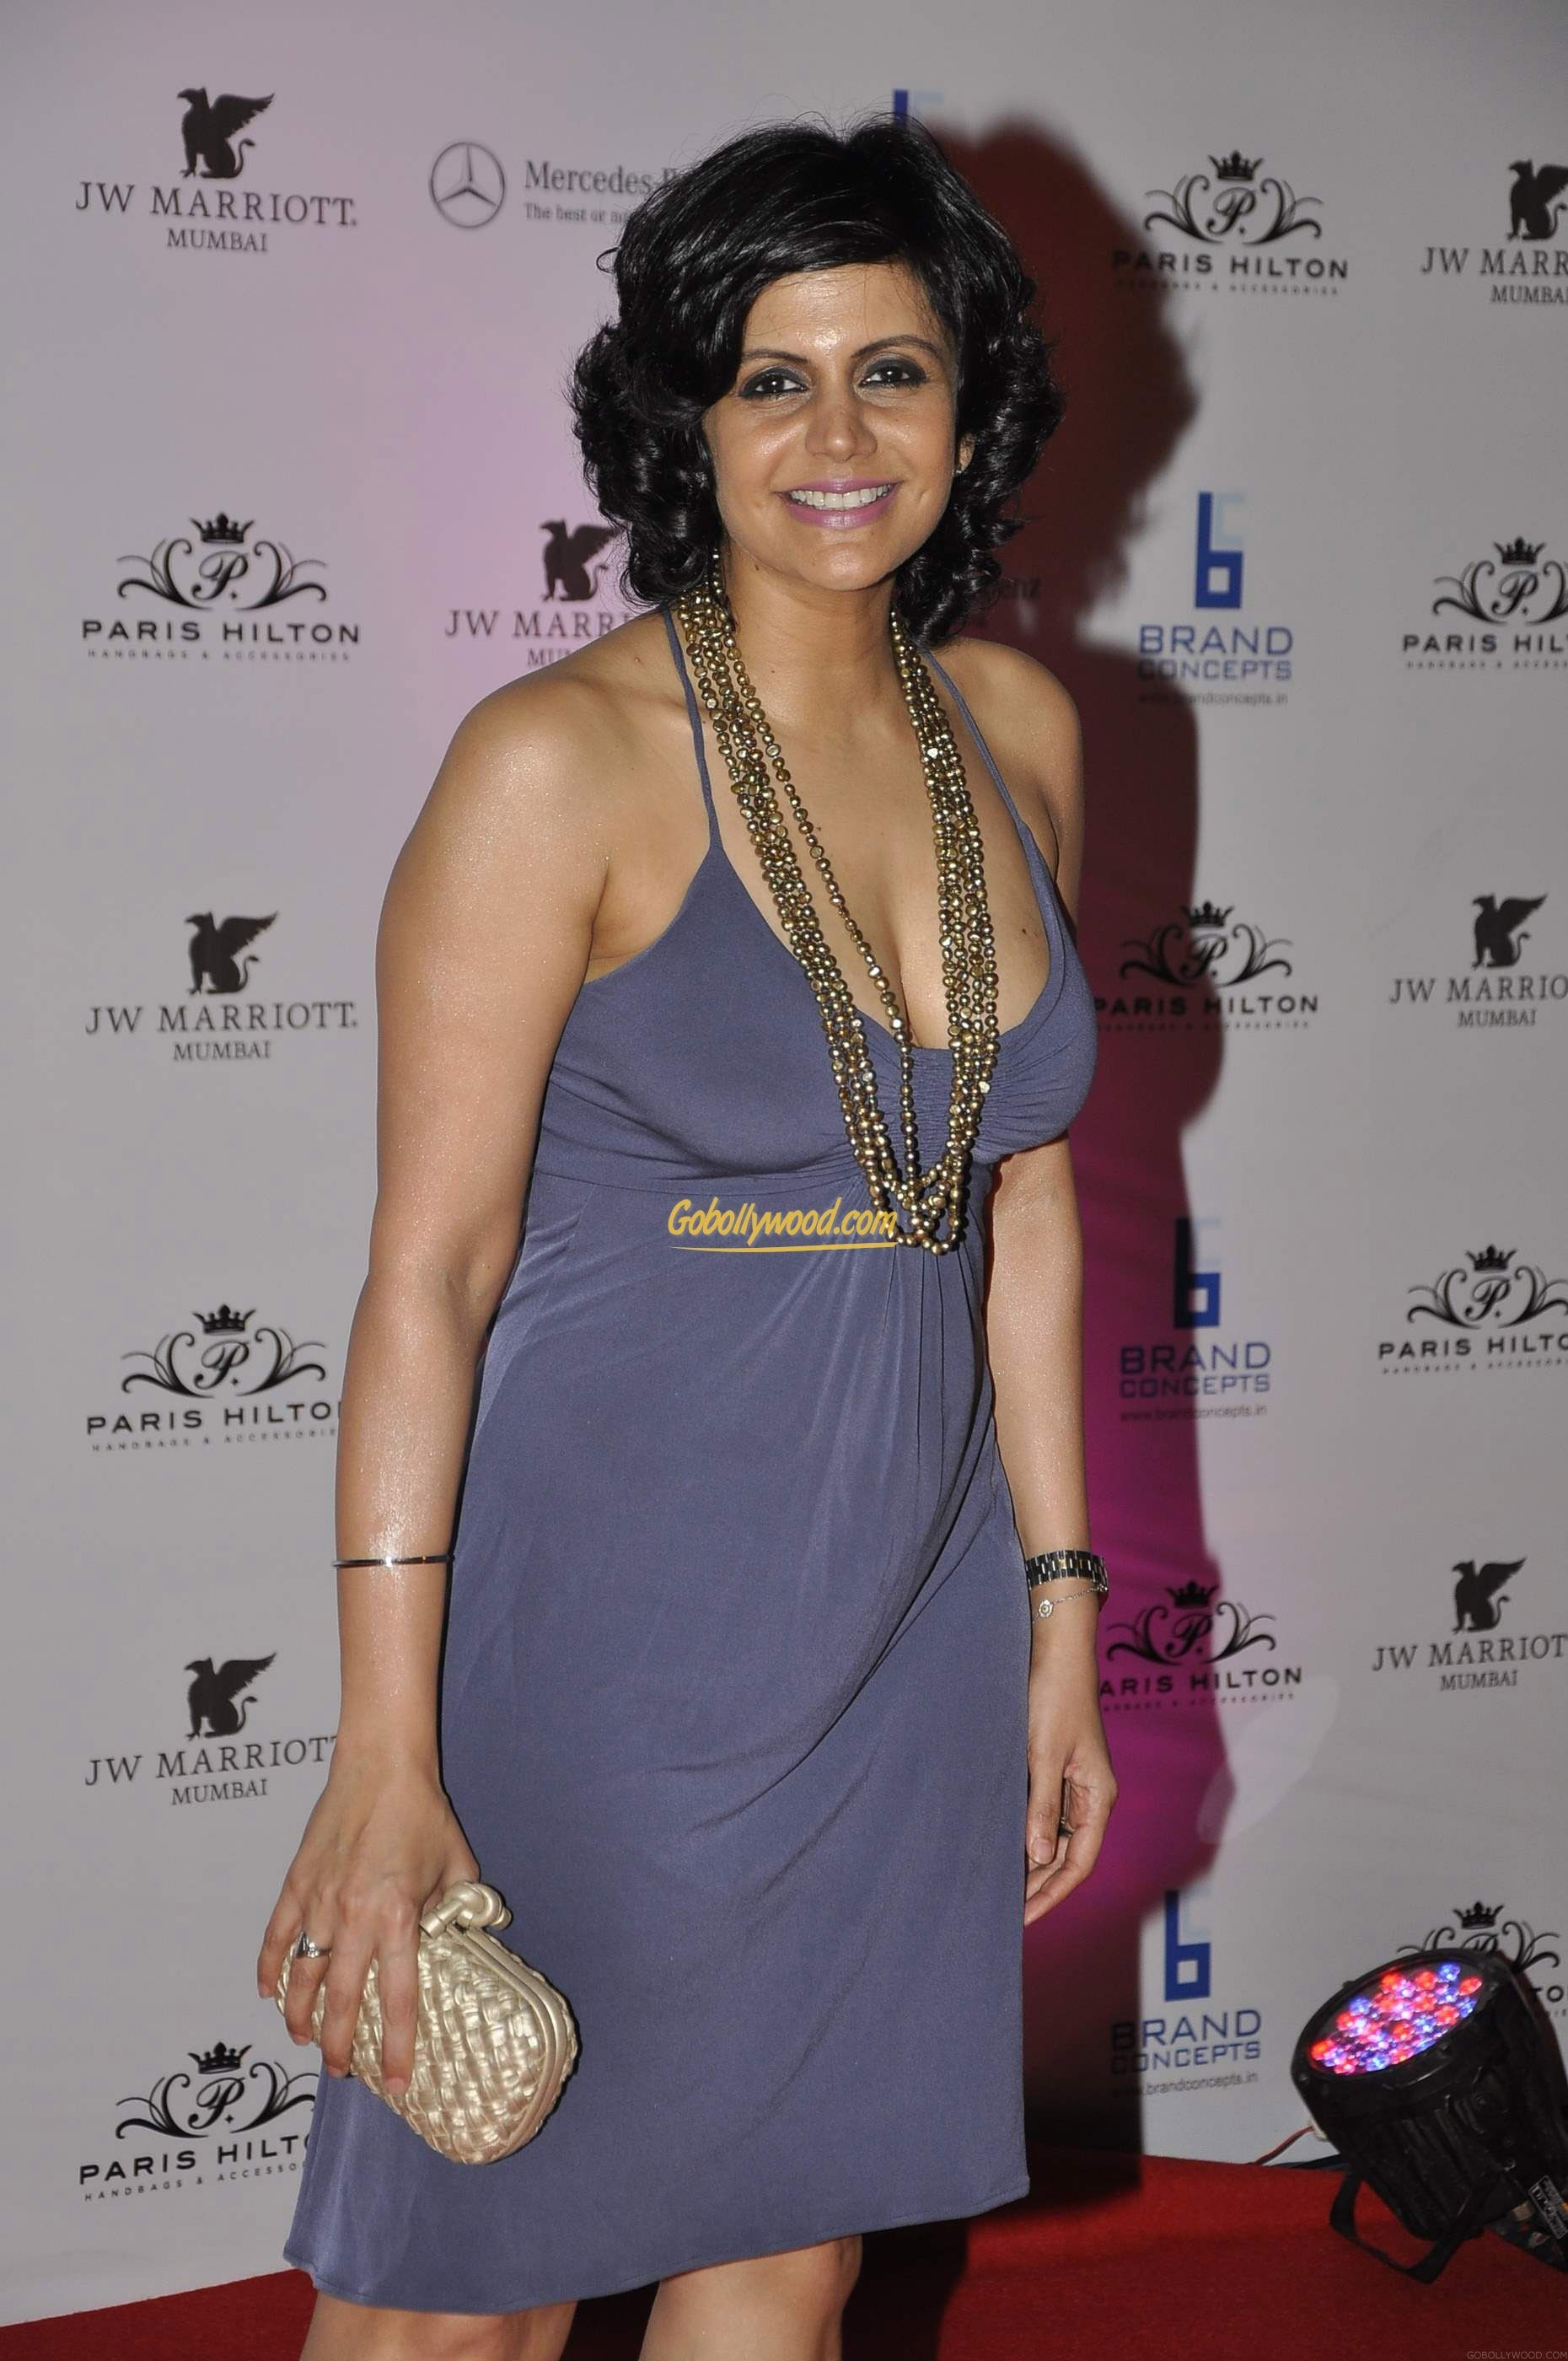 Mandira Bedi | Known people - famous people news and